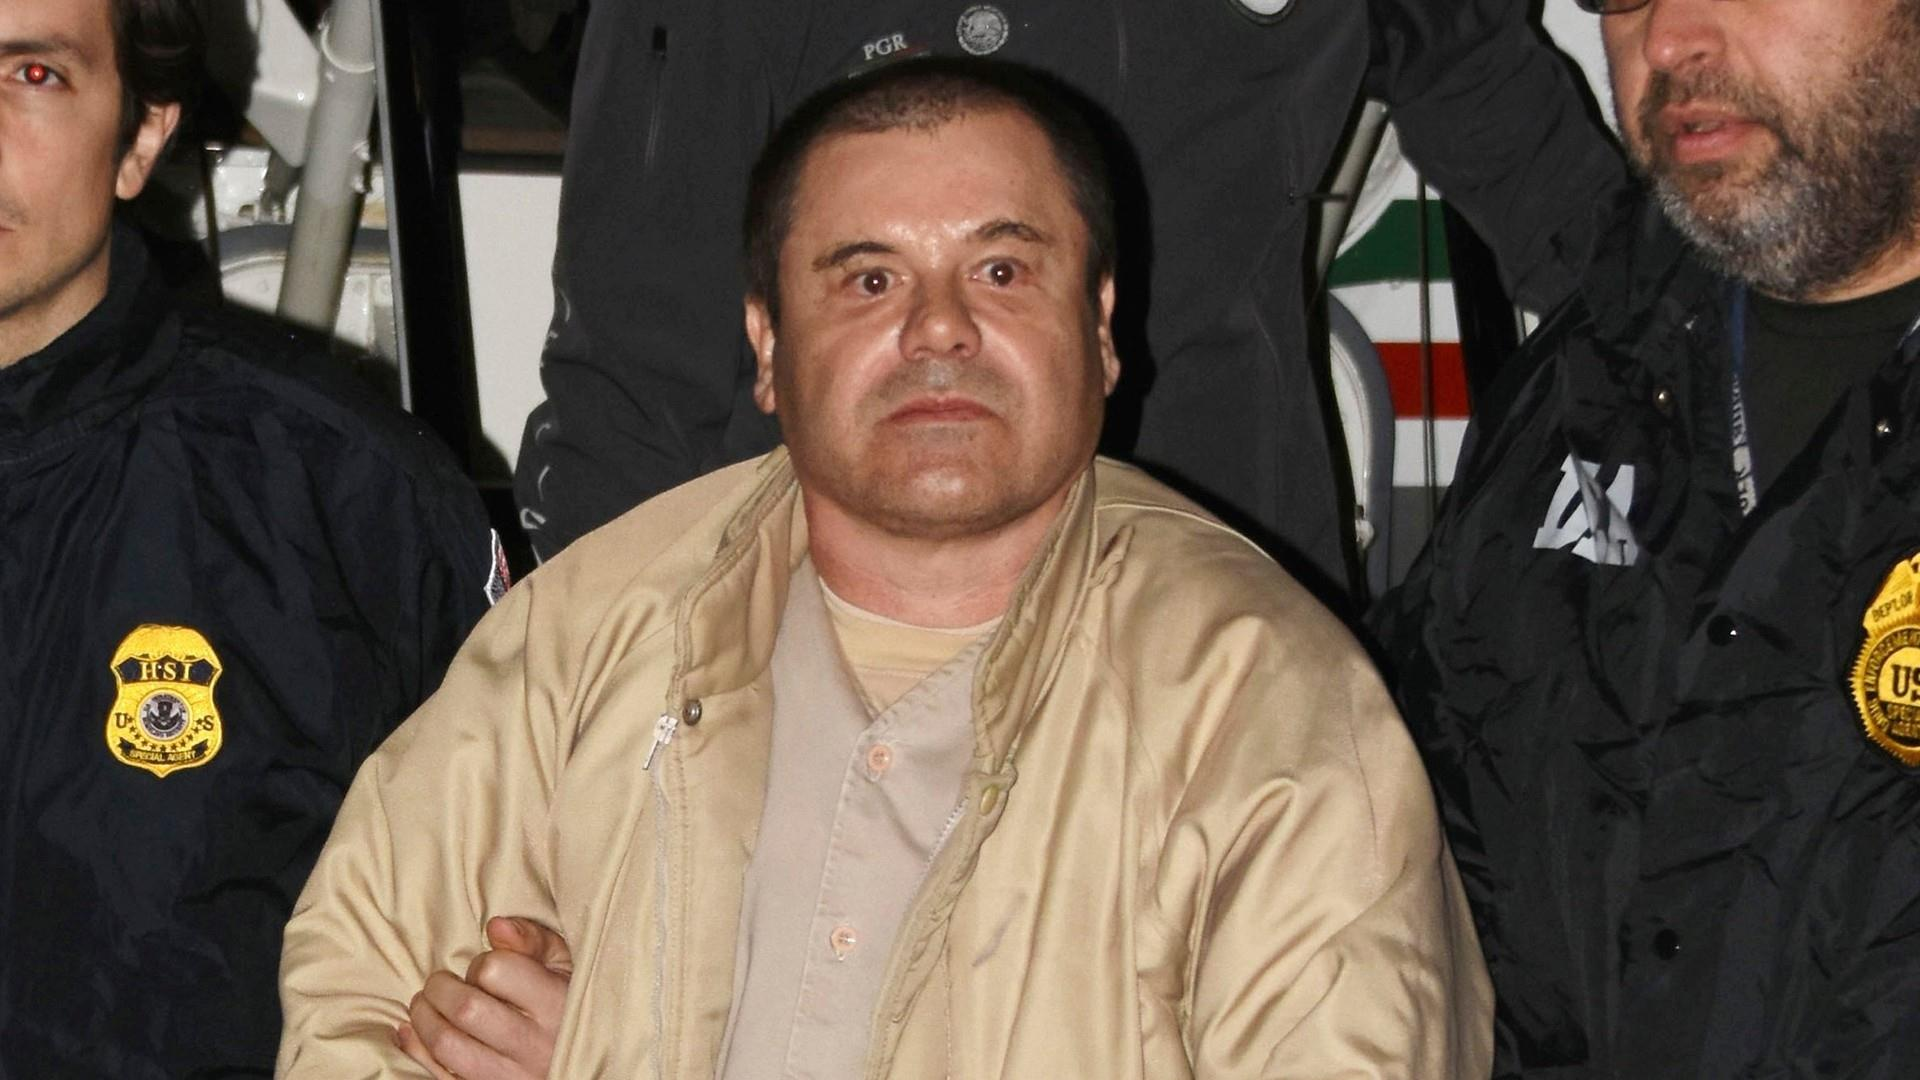 El Chapo's conviction is 'great moral victory,' but has 'done nothing' against Sinaloa cartel, experts say